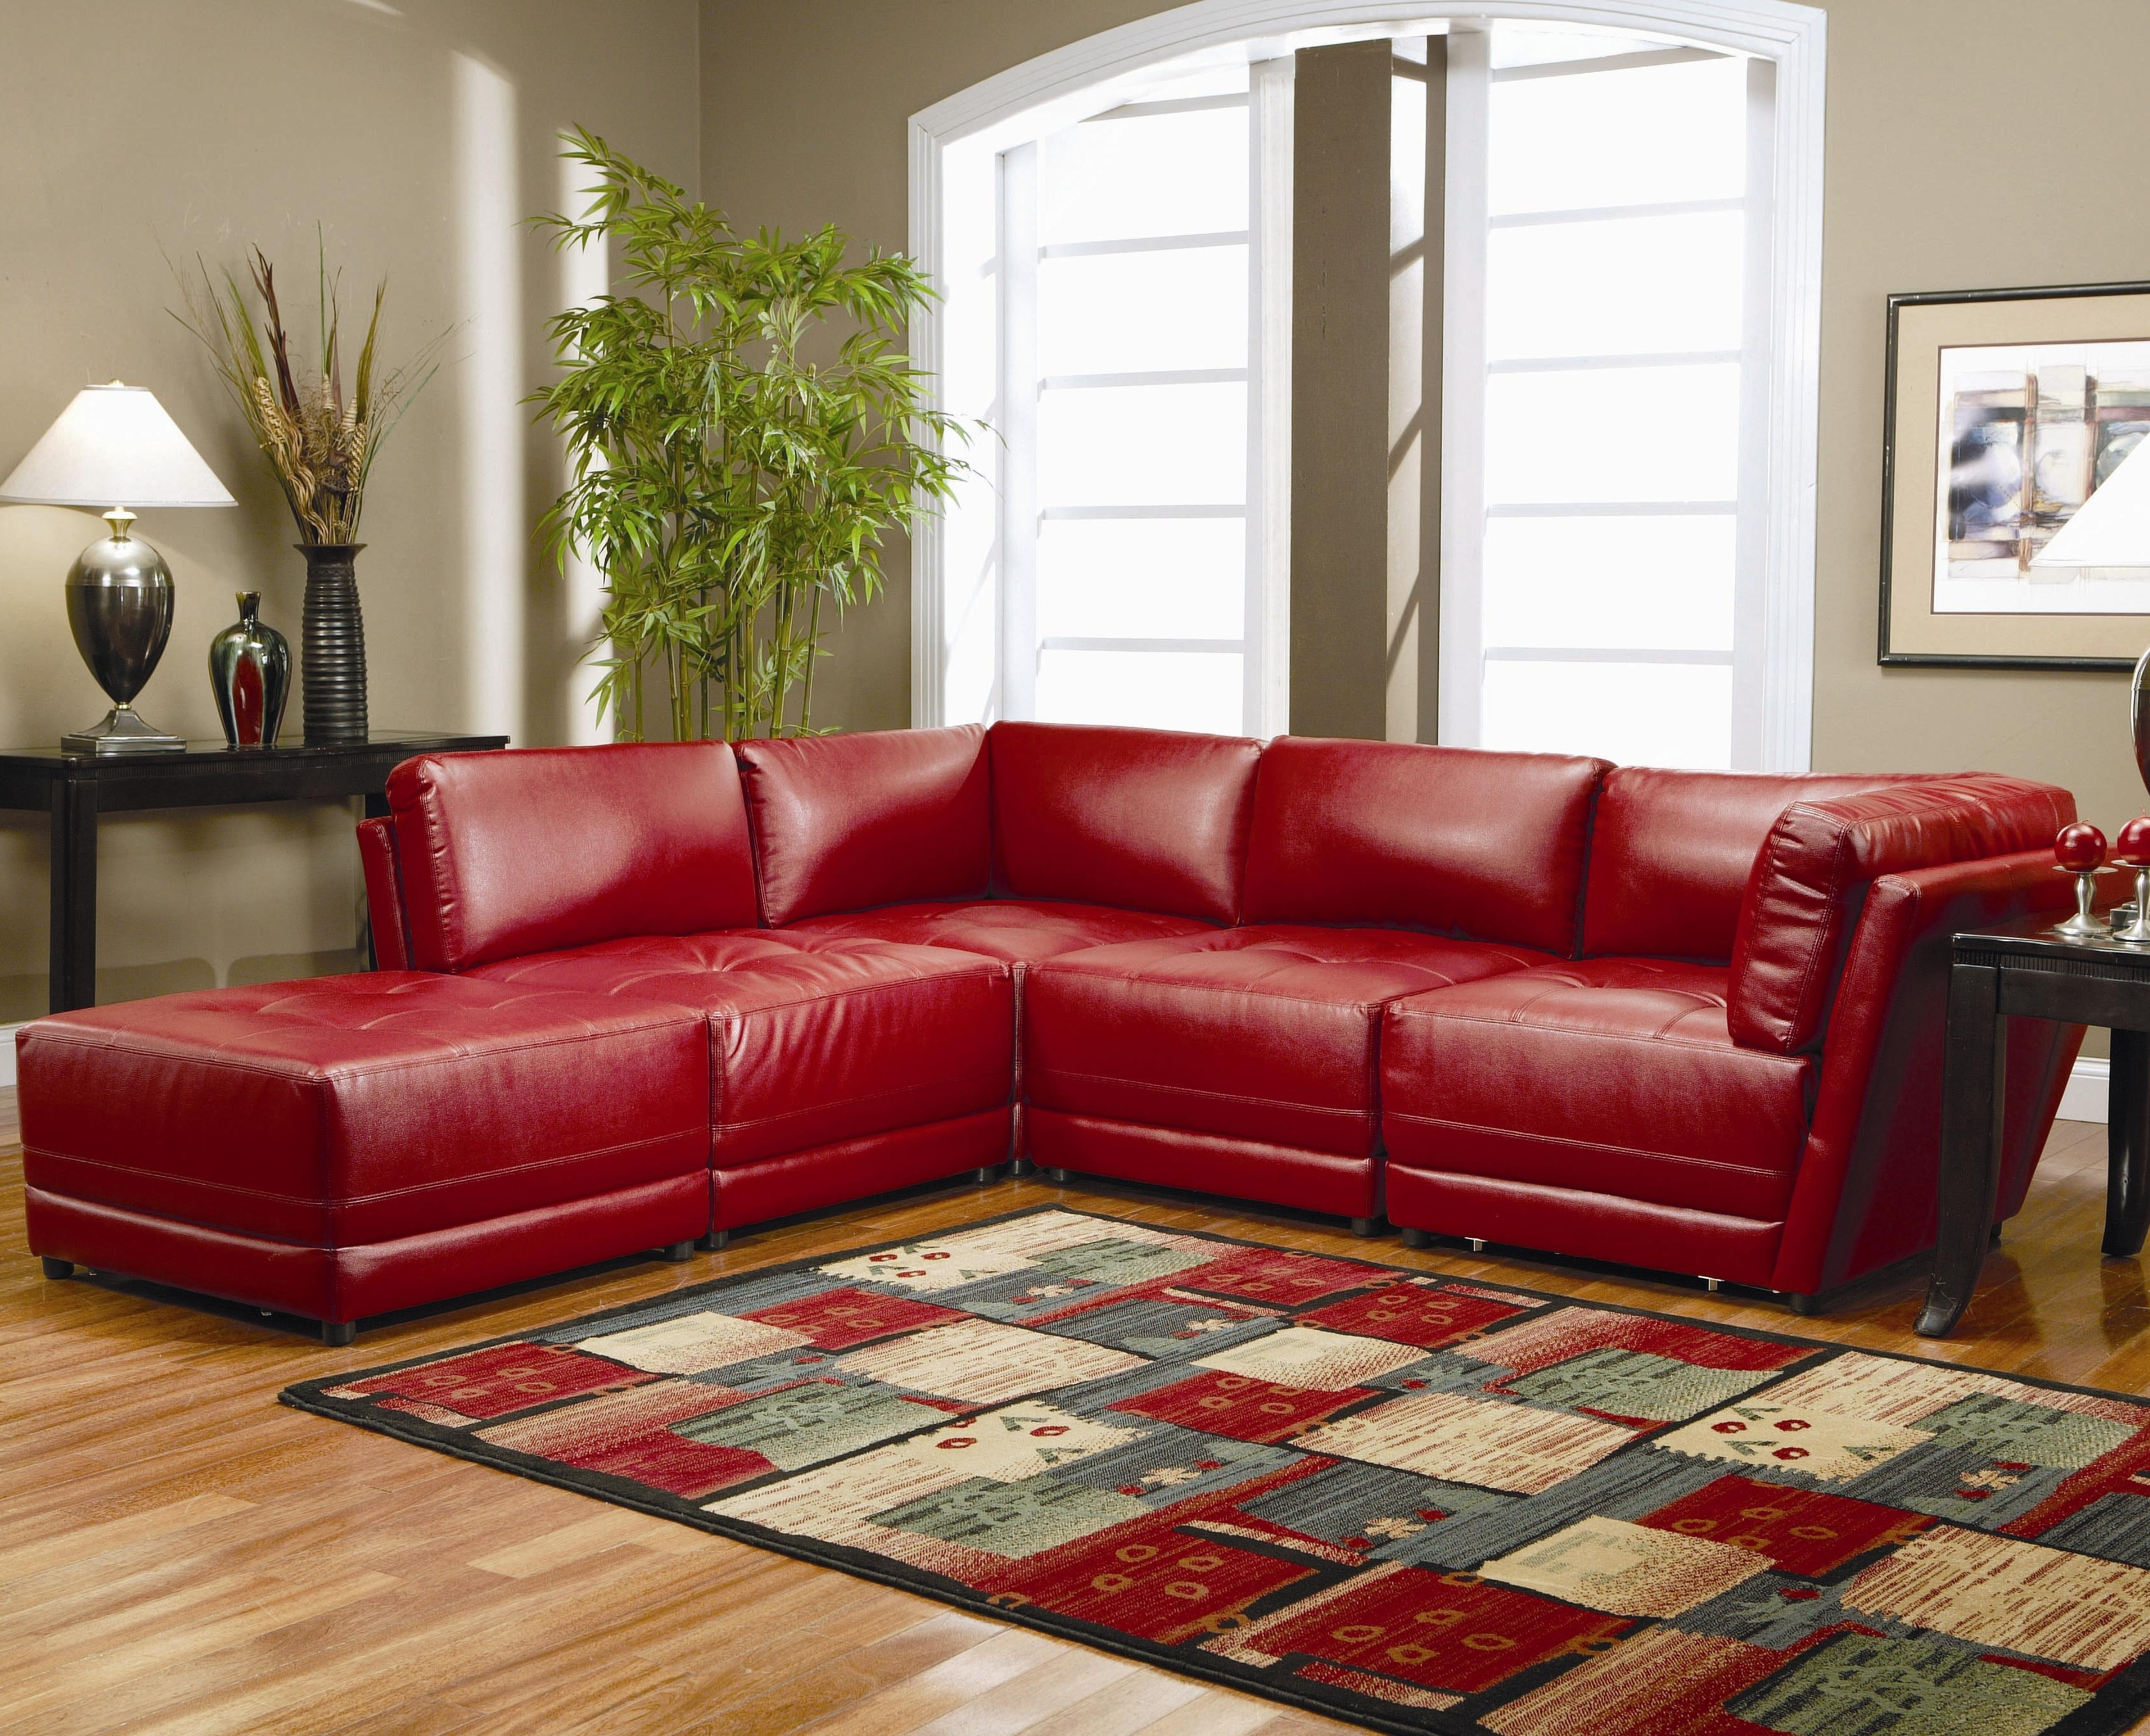 Warm Red Leather Sectional L Shaped Sofa Design Ideas For Living In Red Faux Leather Sectionals (View 6 of 10)